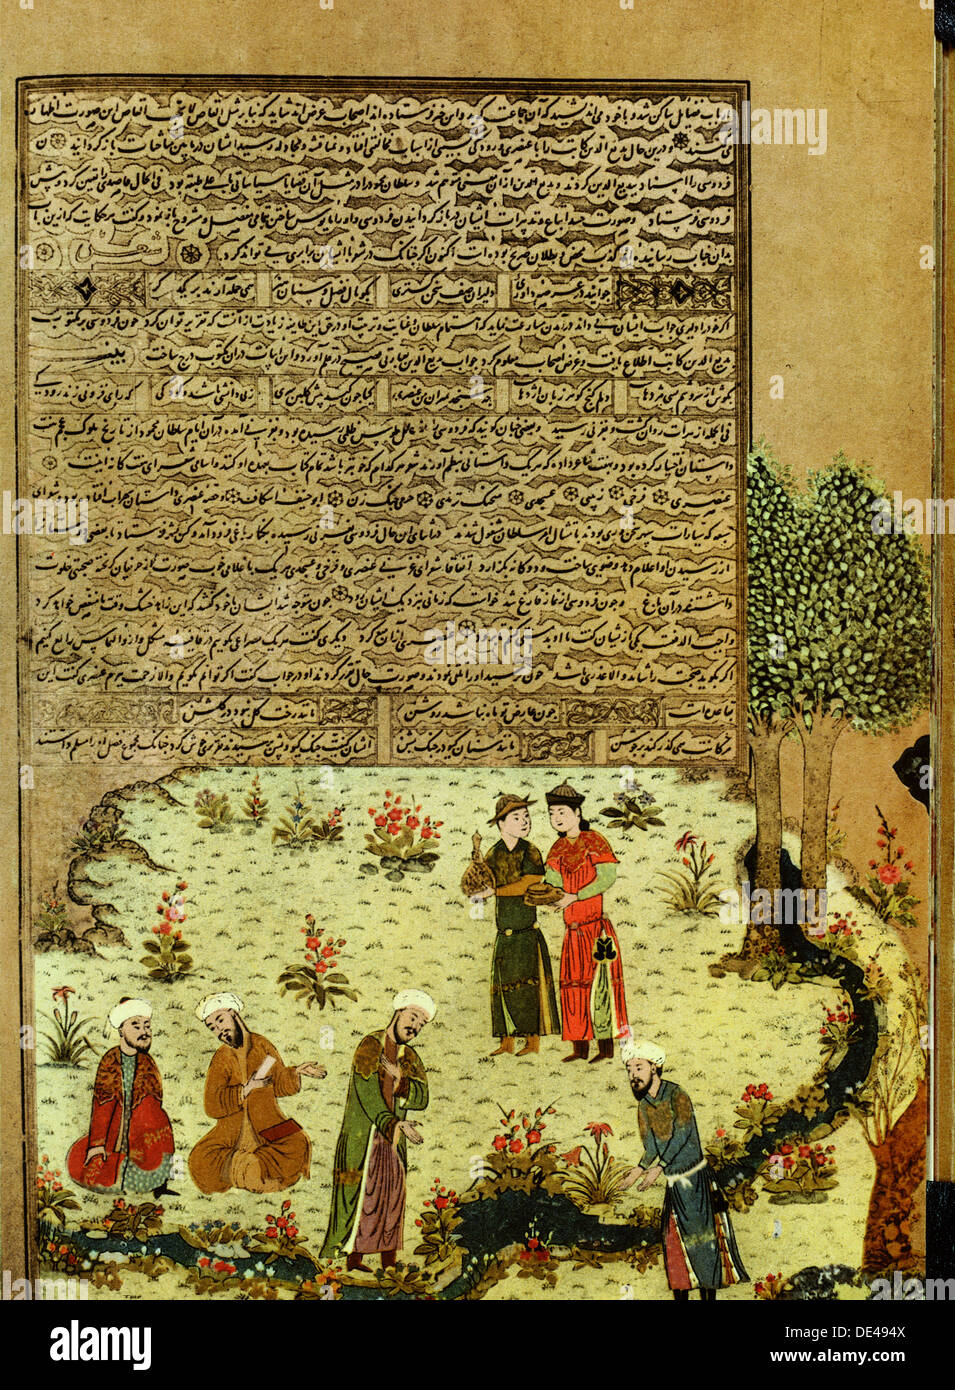 The introductory miniature to Ferdausi's 'Book of Kings' (Shah-nameh) showing the unknown poet meeting the poets of the court of - Stock Image